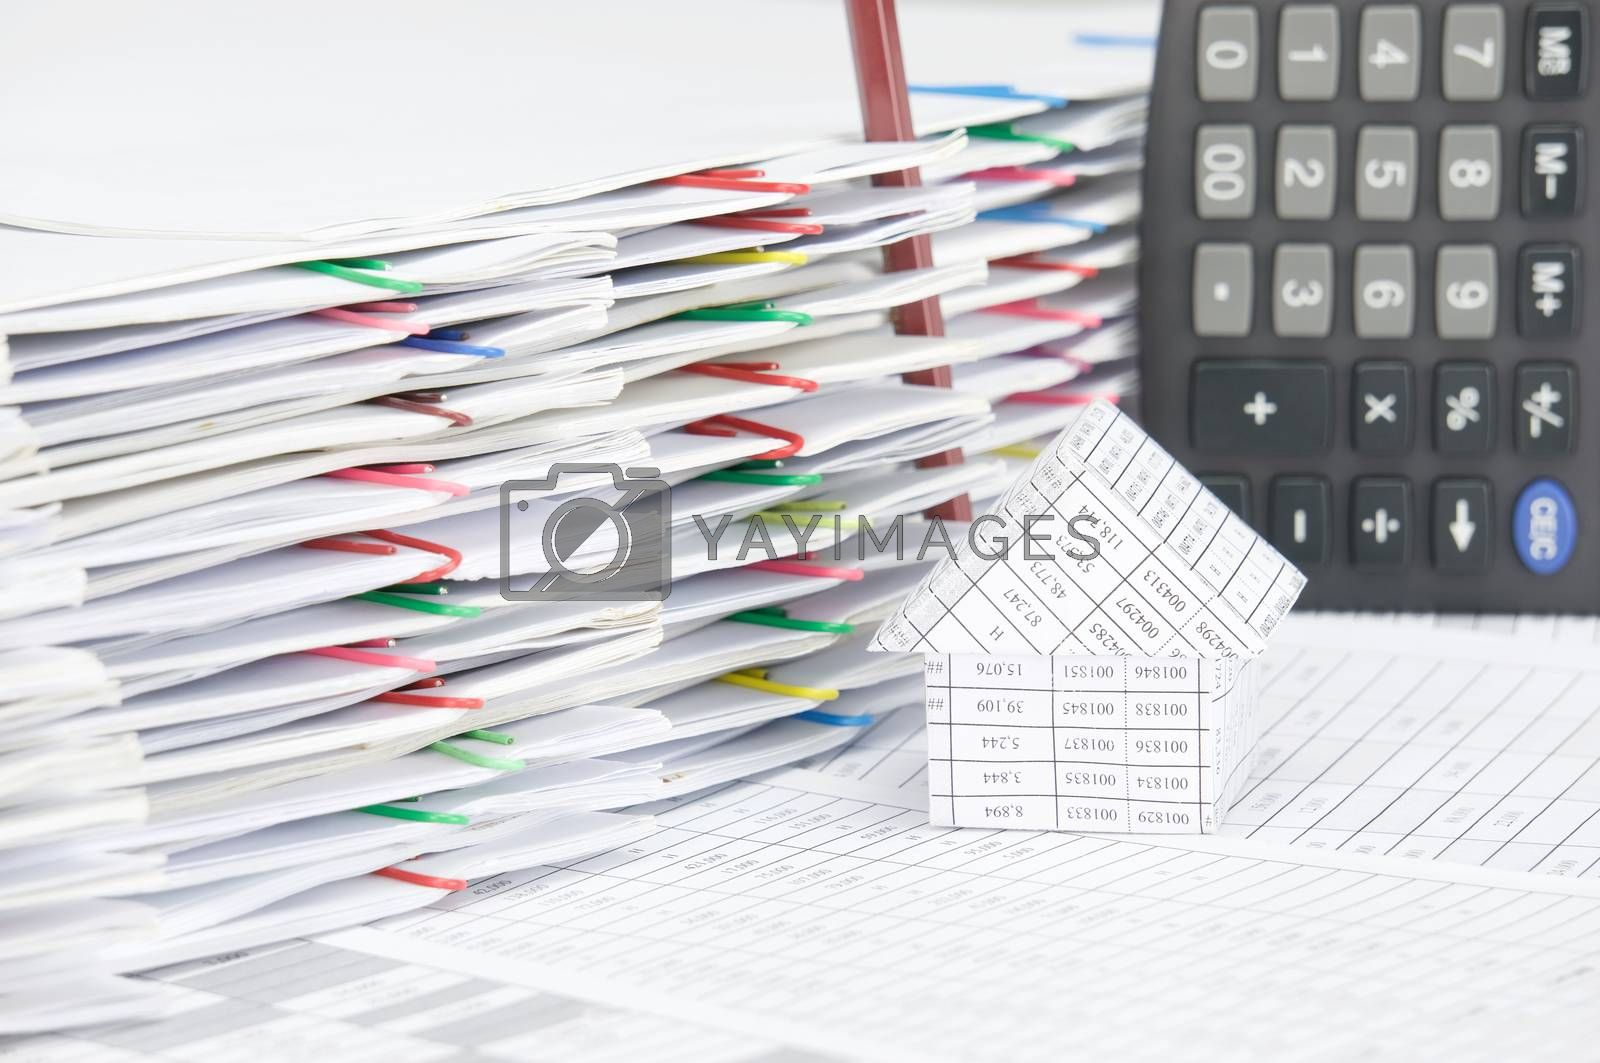 Royalty free image of House with brown pencil place vertical on finance account by eaglesky